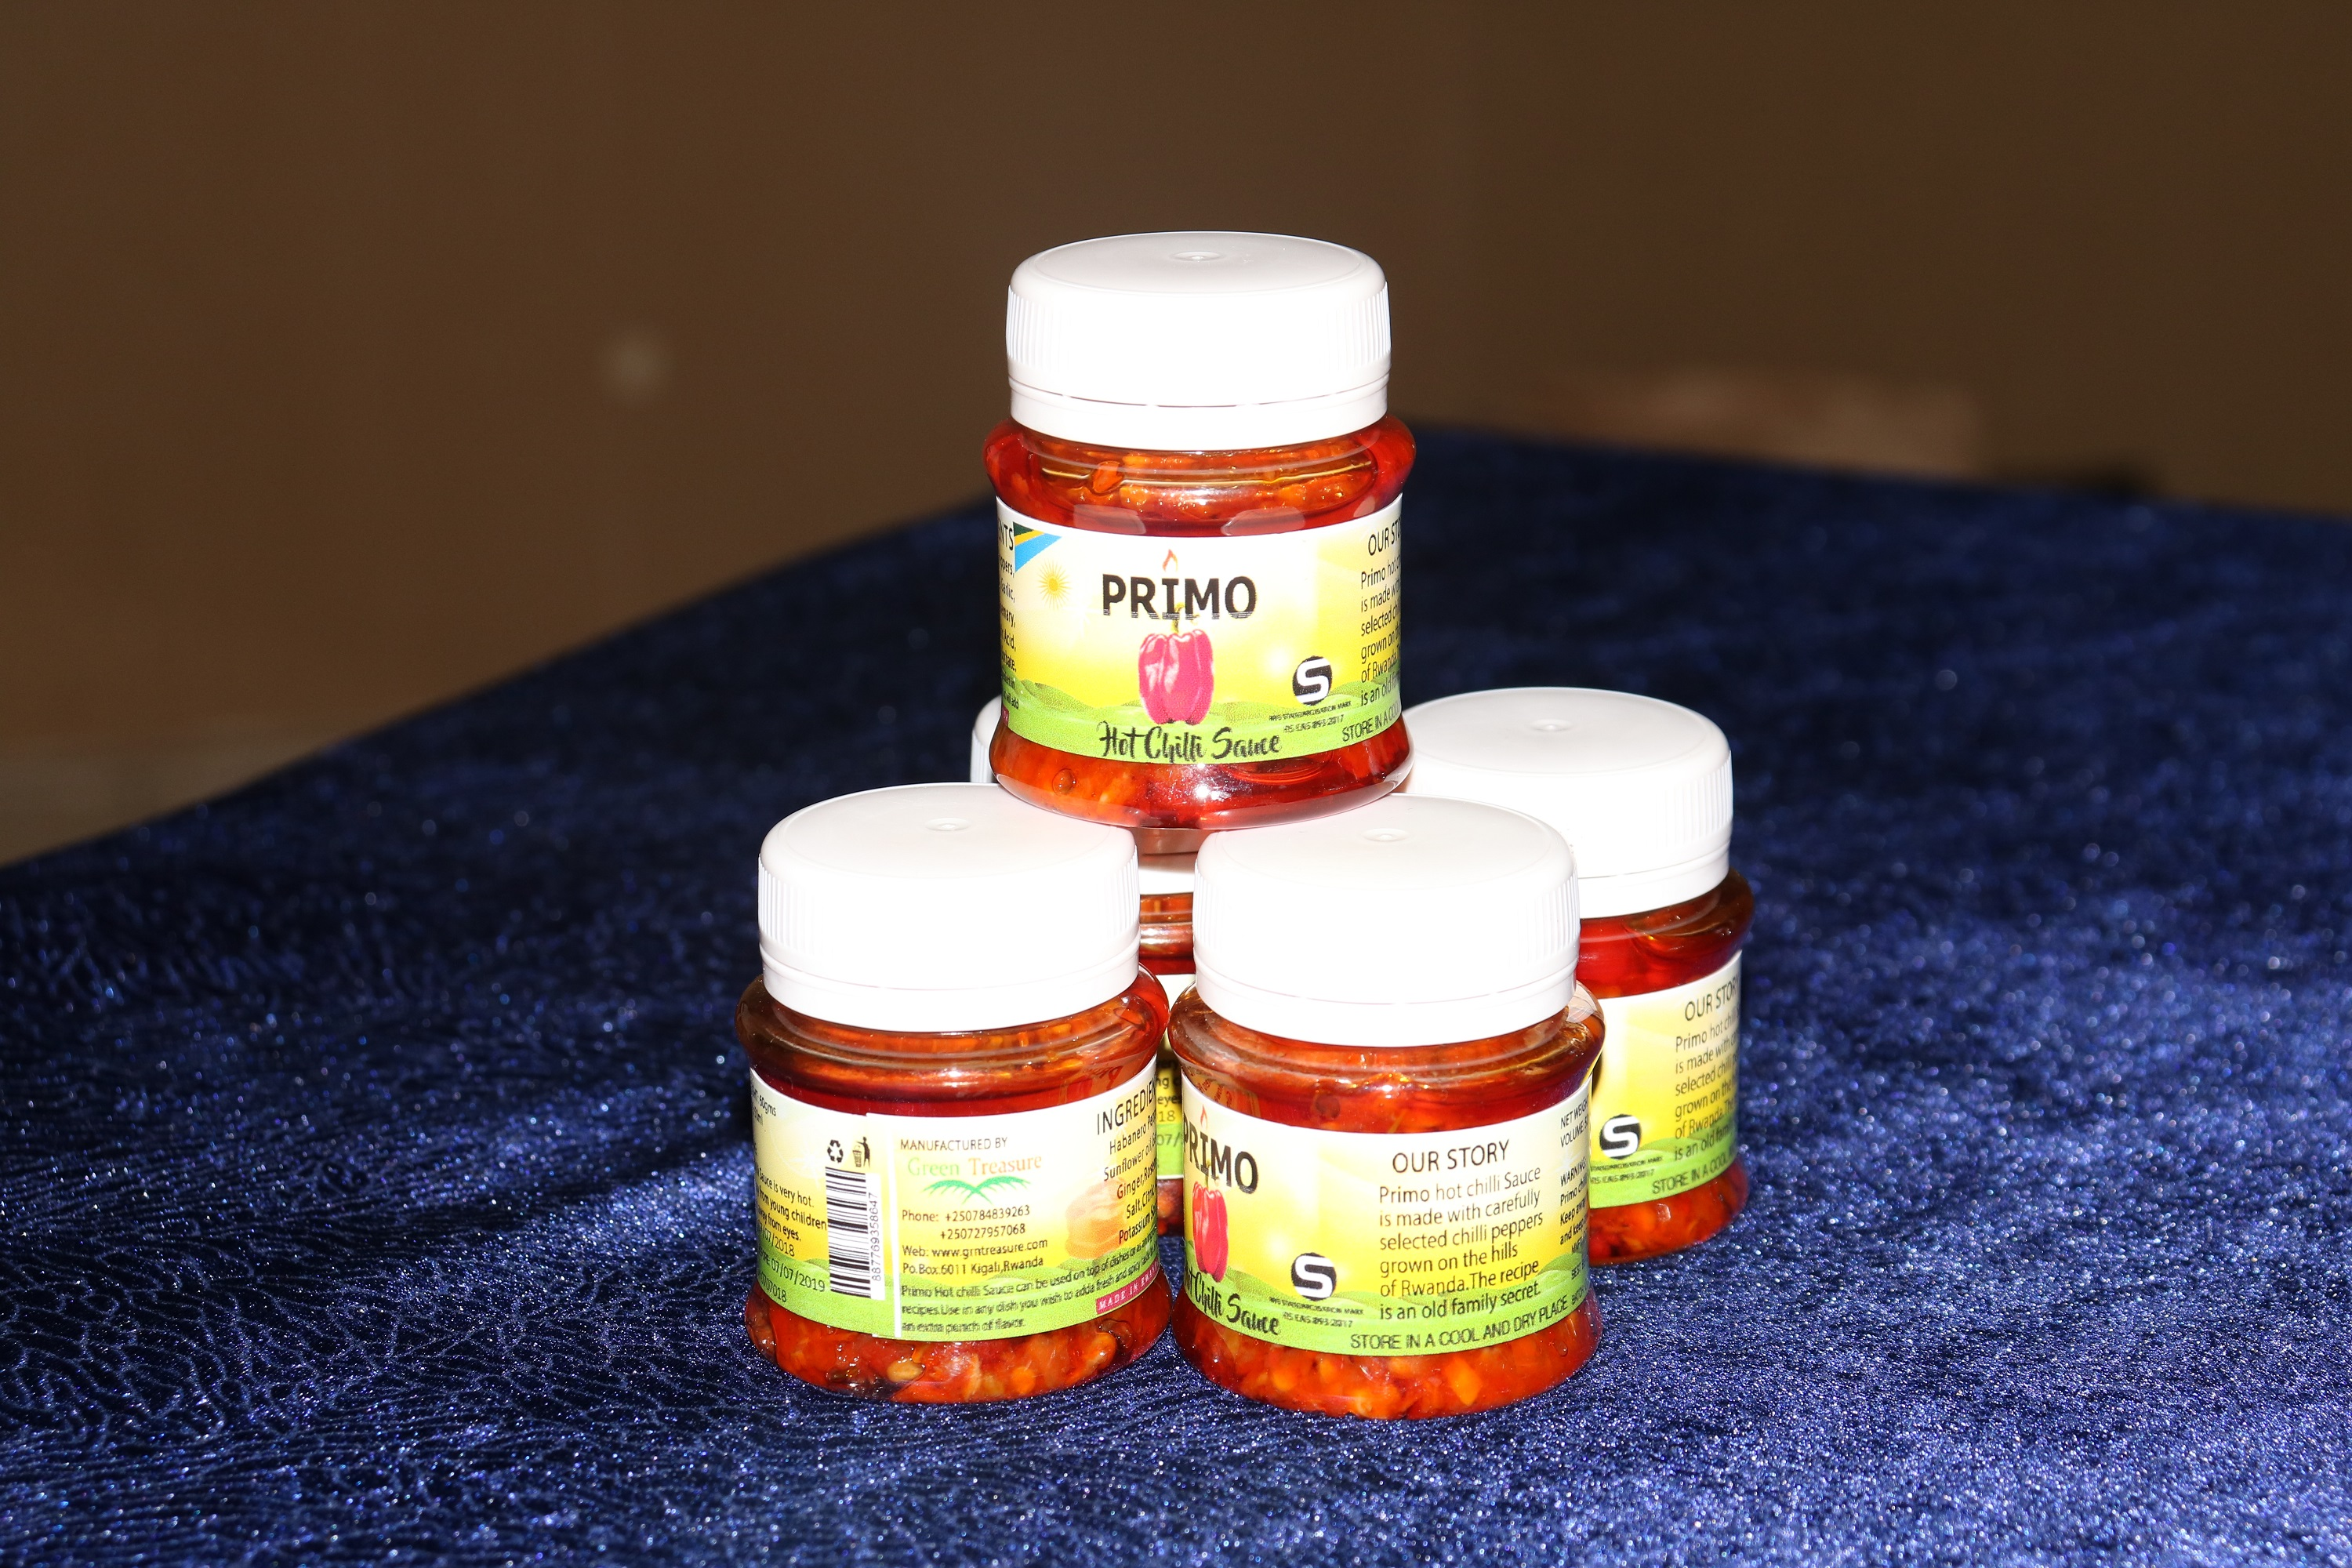 Several jars of Primo Chili Sauce